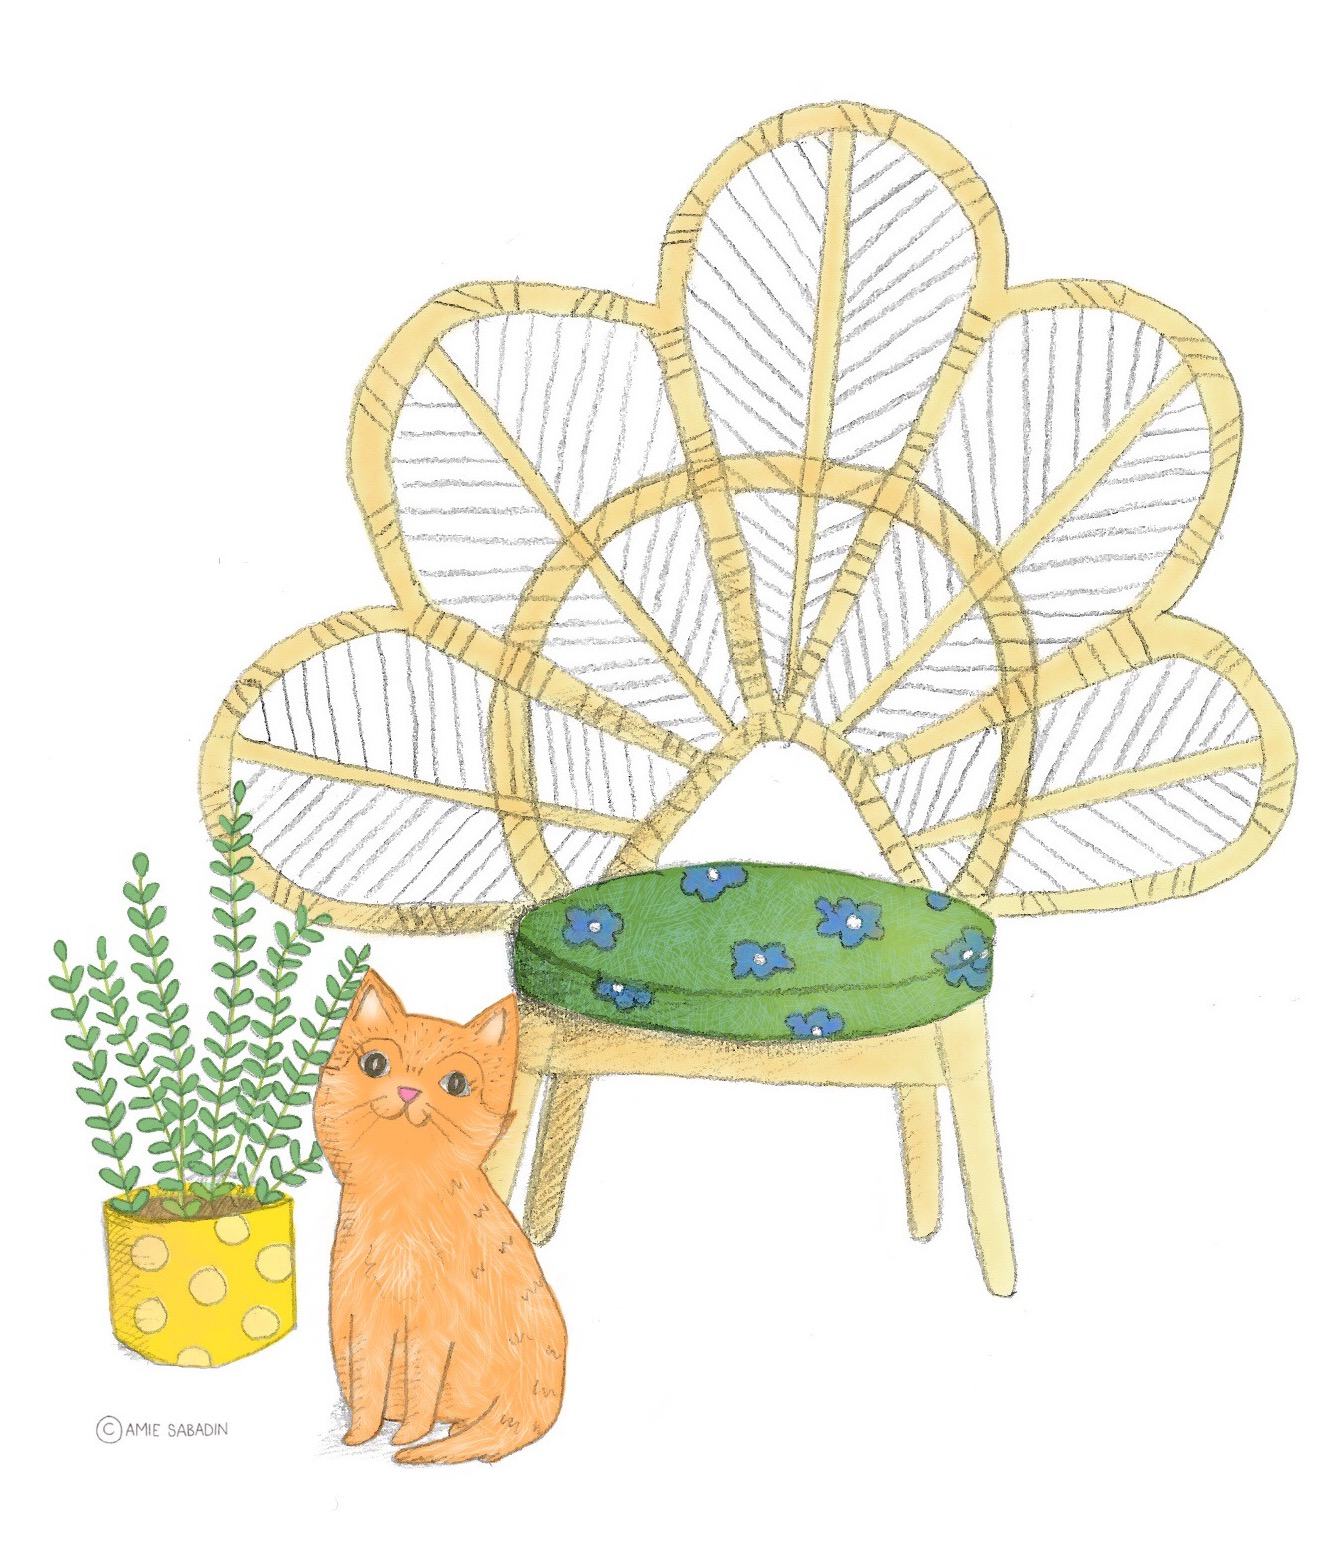 Peacock chair illustration